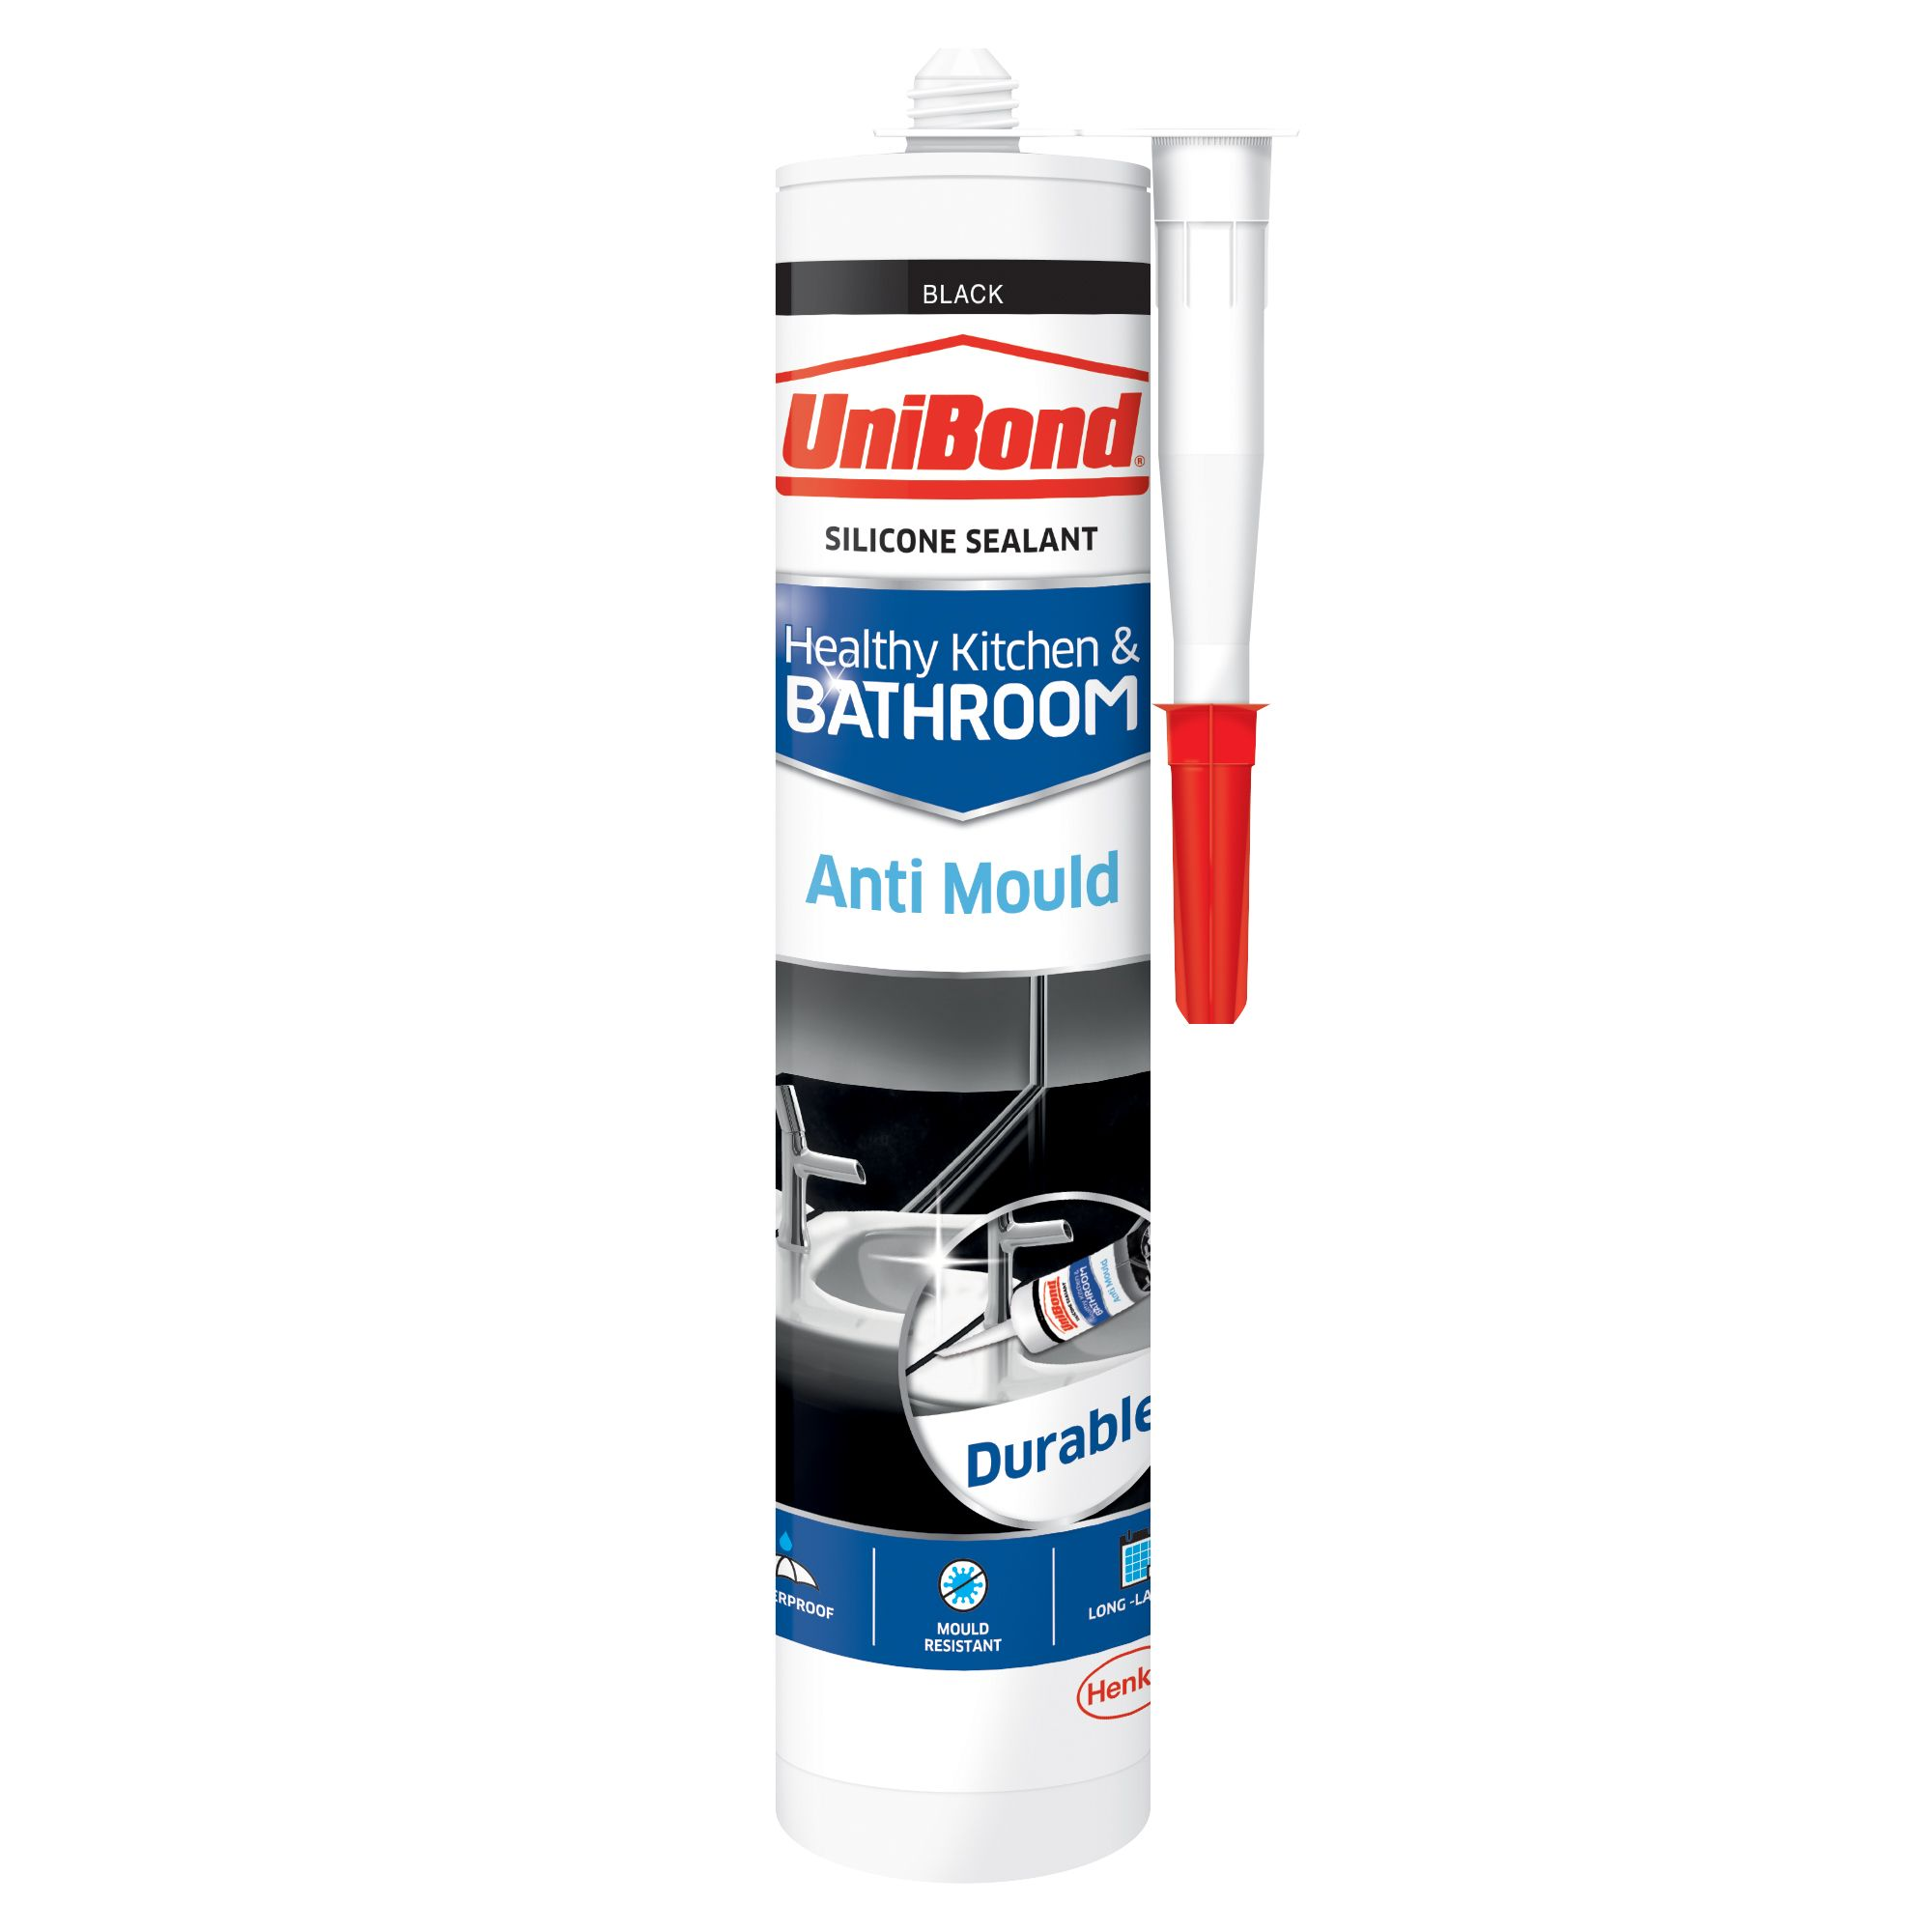 UniBond Anti Mould Black Kitchen & Bathroom Sealant 300 ml ...